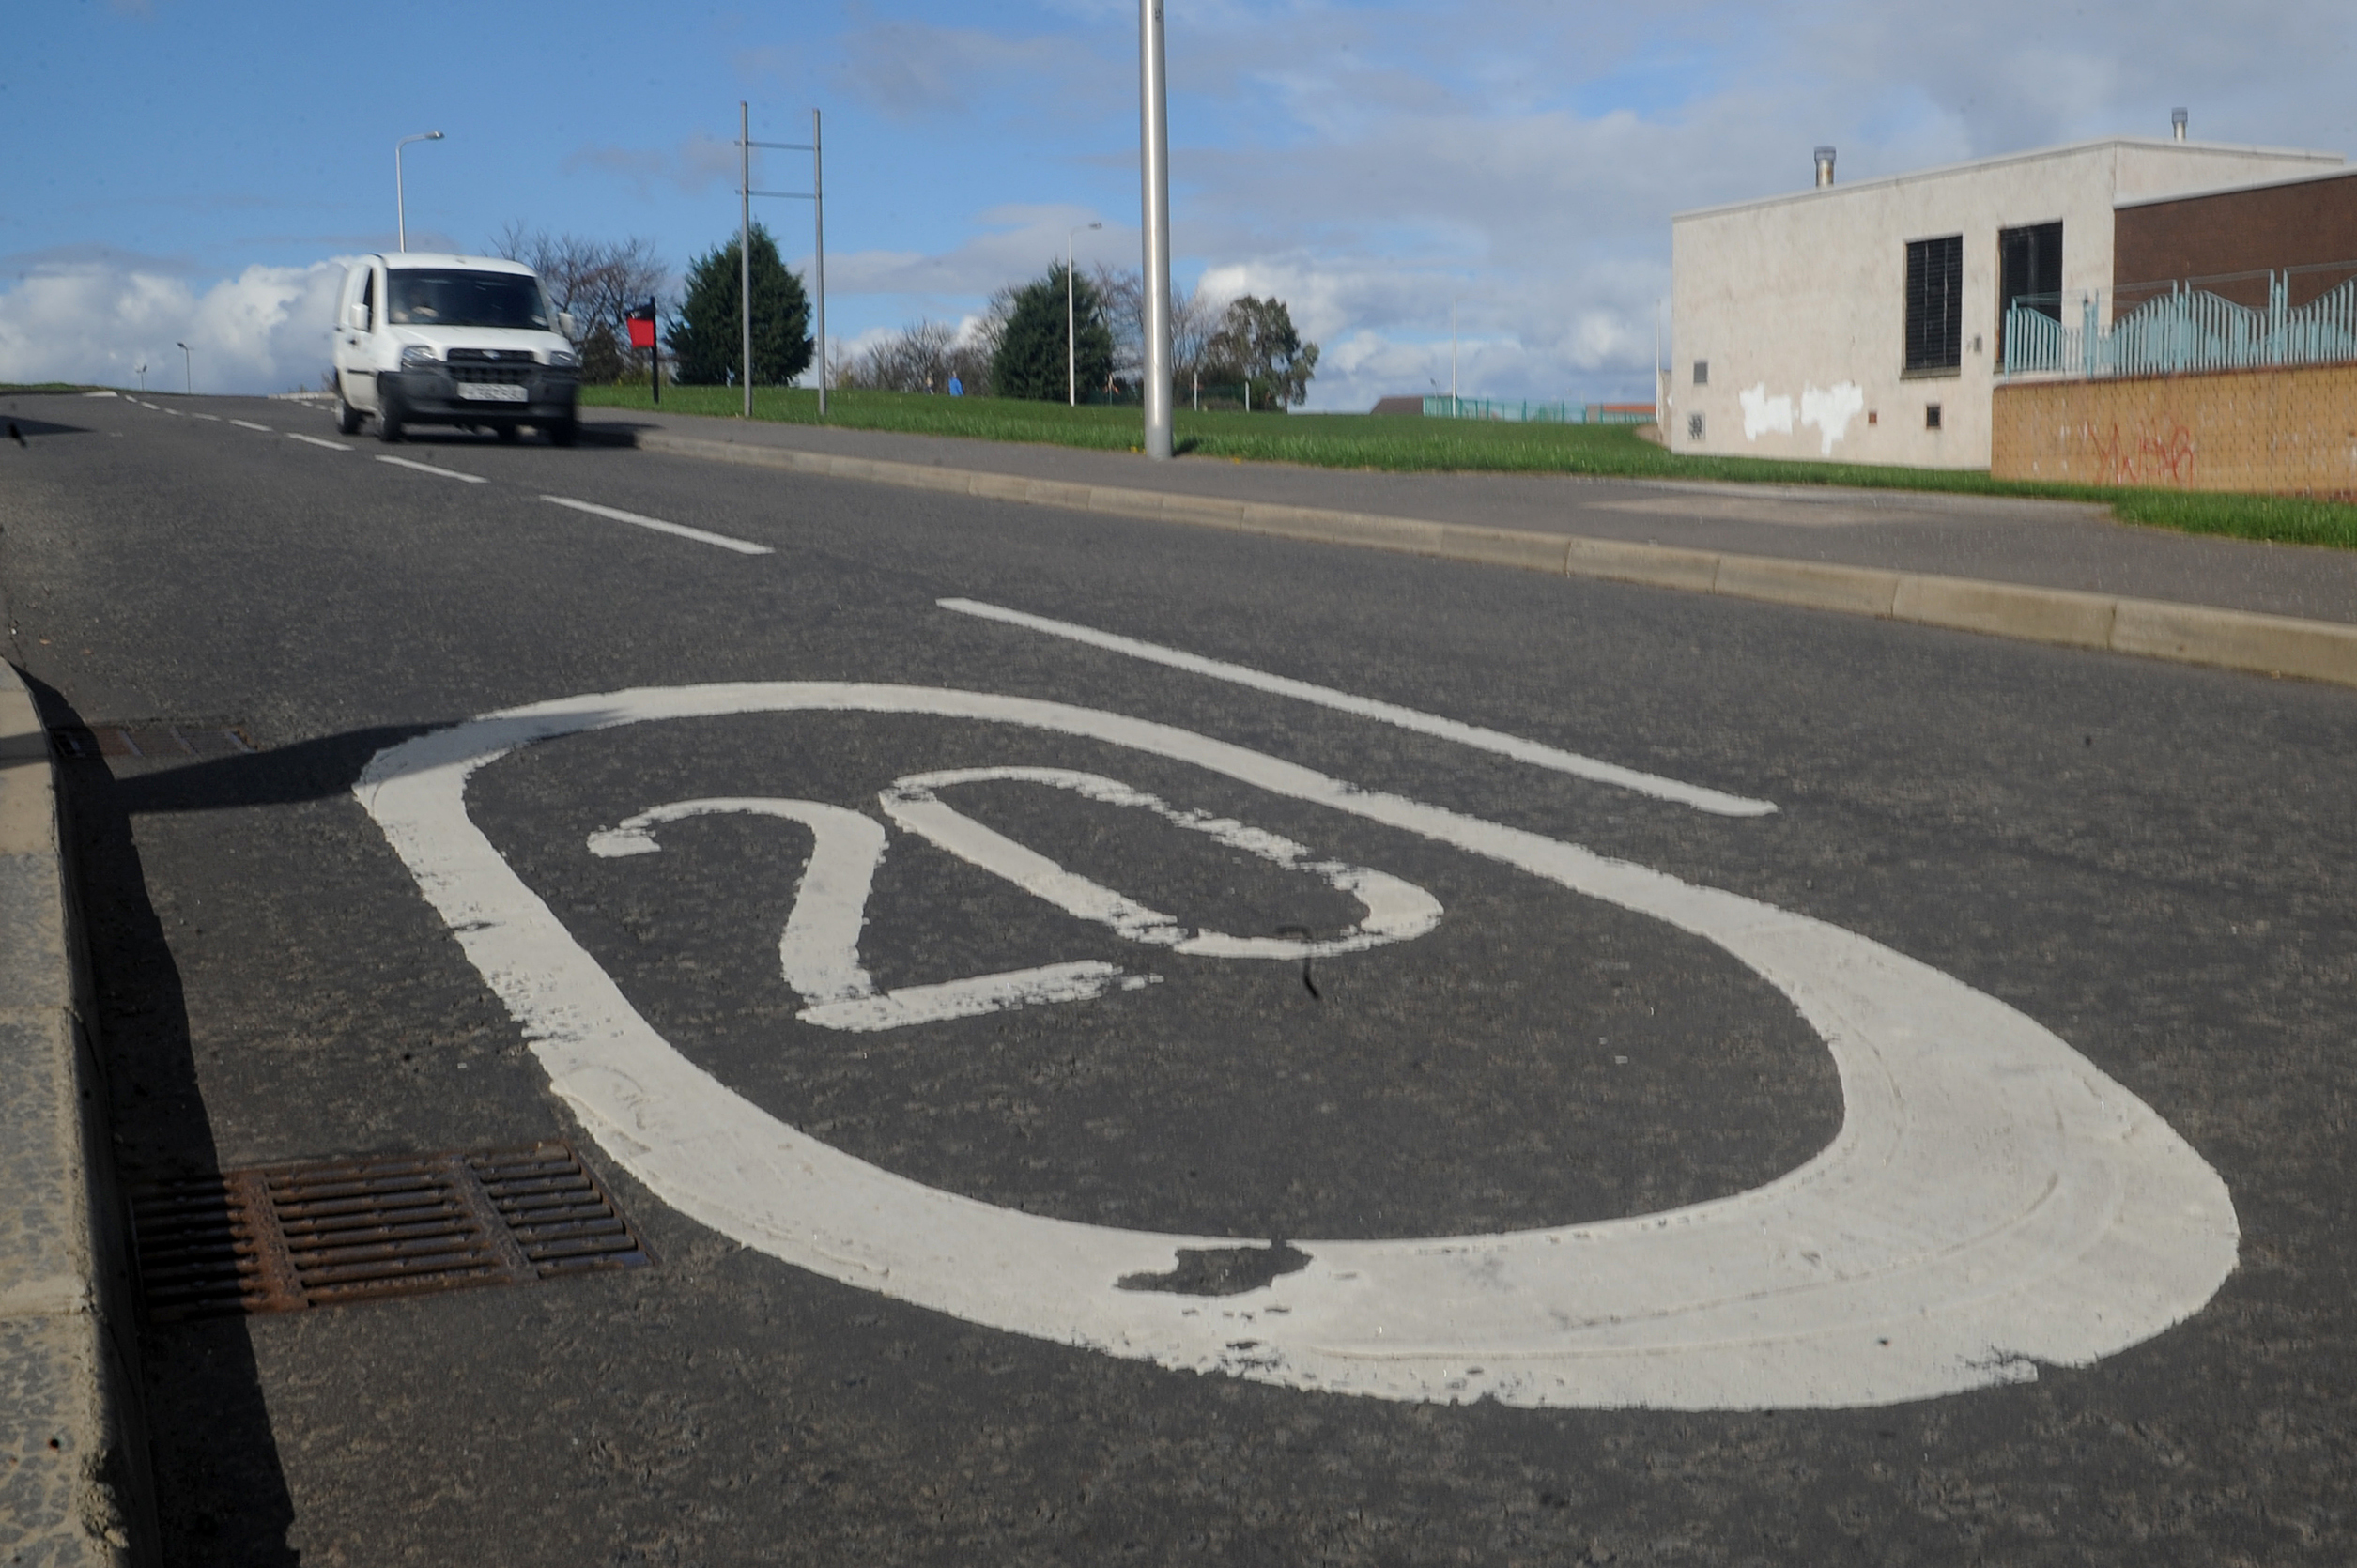 A 20mph speed limit on Lothian Crescent in Dundee.